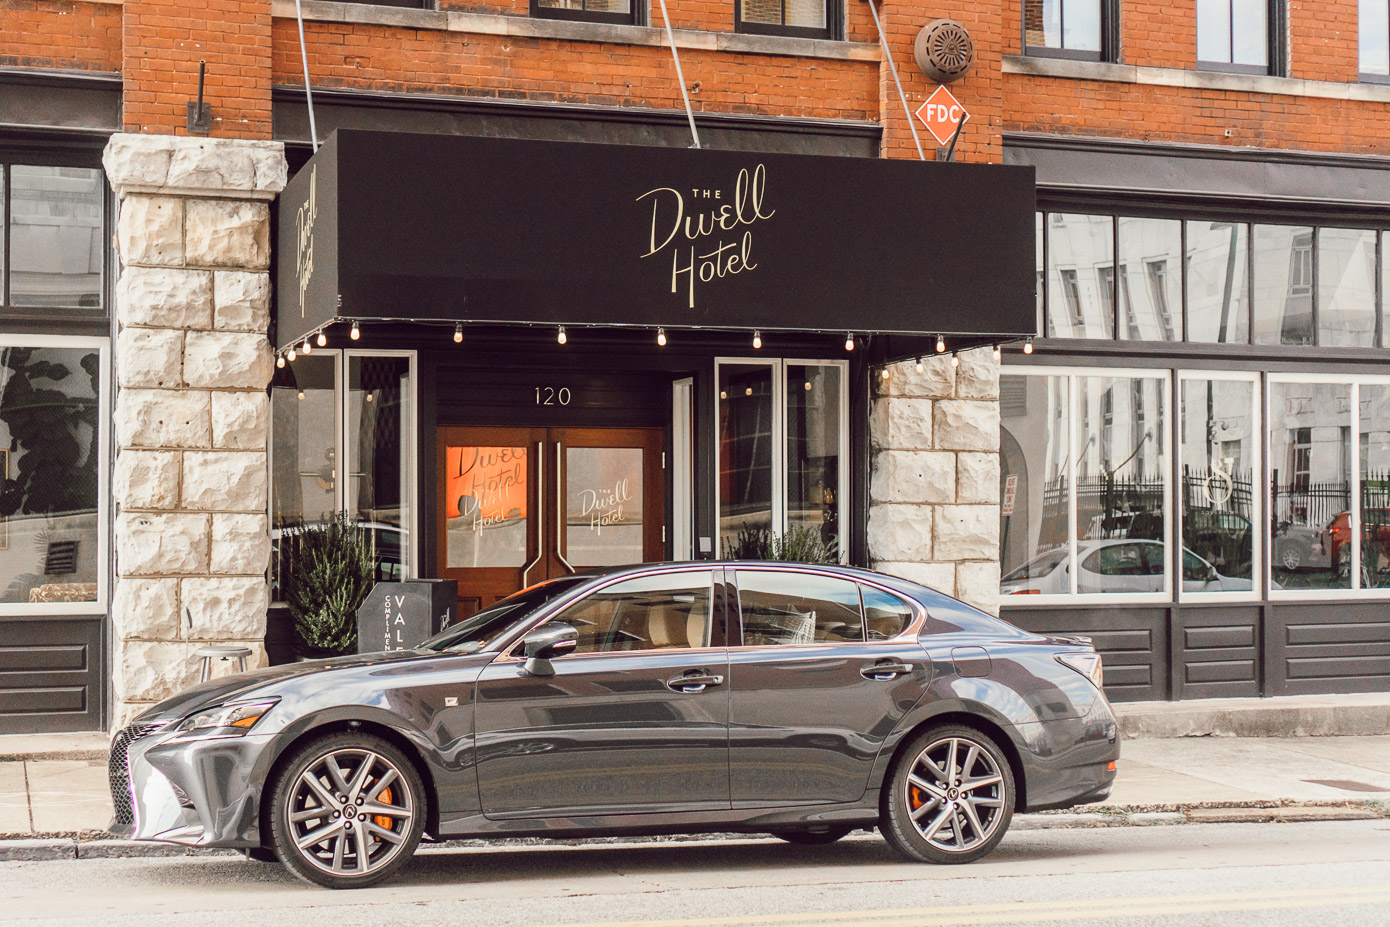 The Dwell Hotel Chattanooga Tennessee, Lexus GS350 | Chattanooga Travel Guide Featured on Louella Reese Life & Style Blog